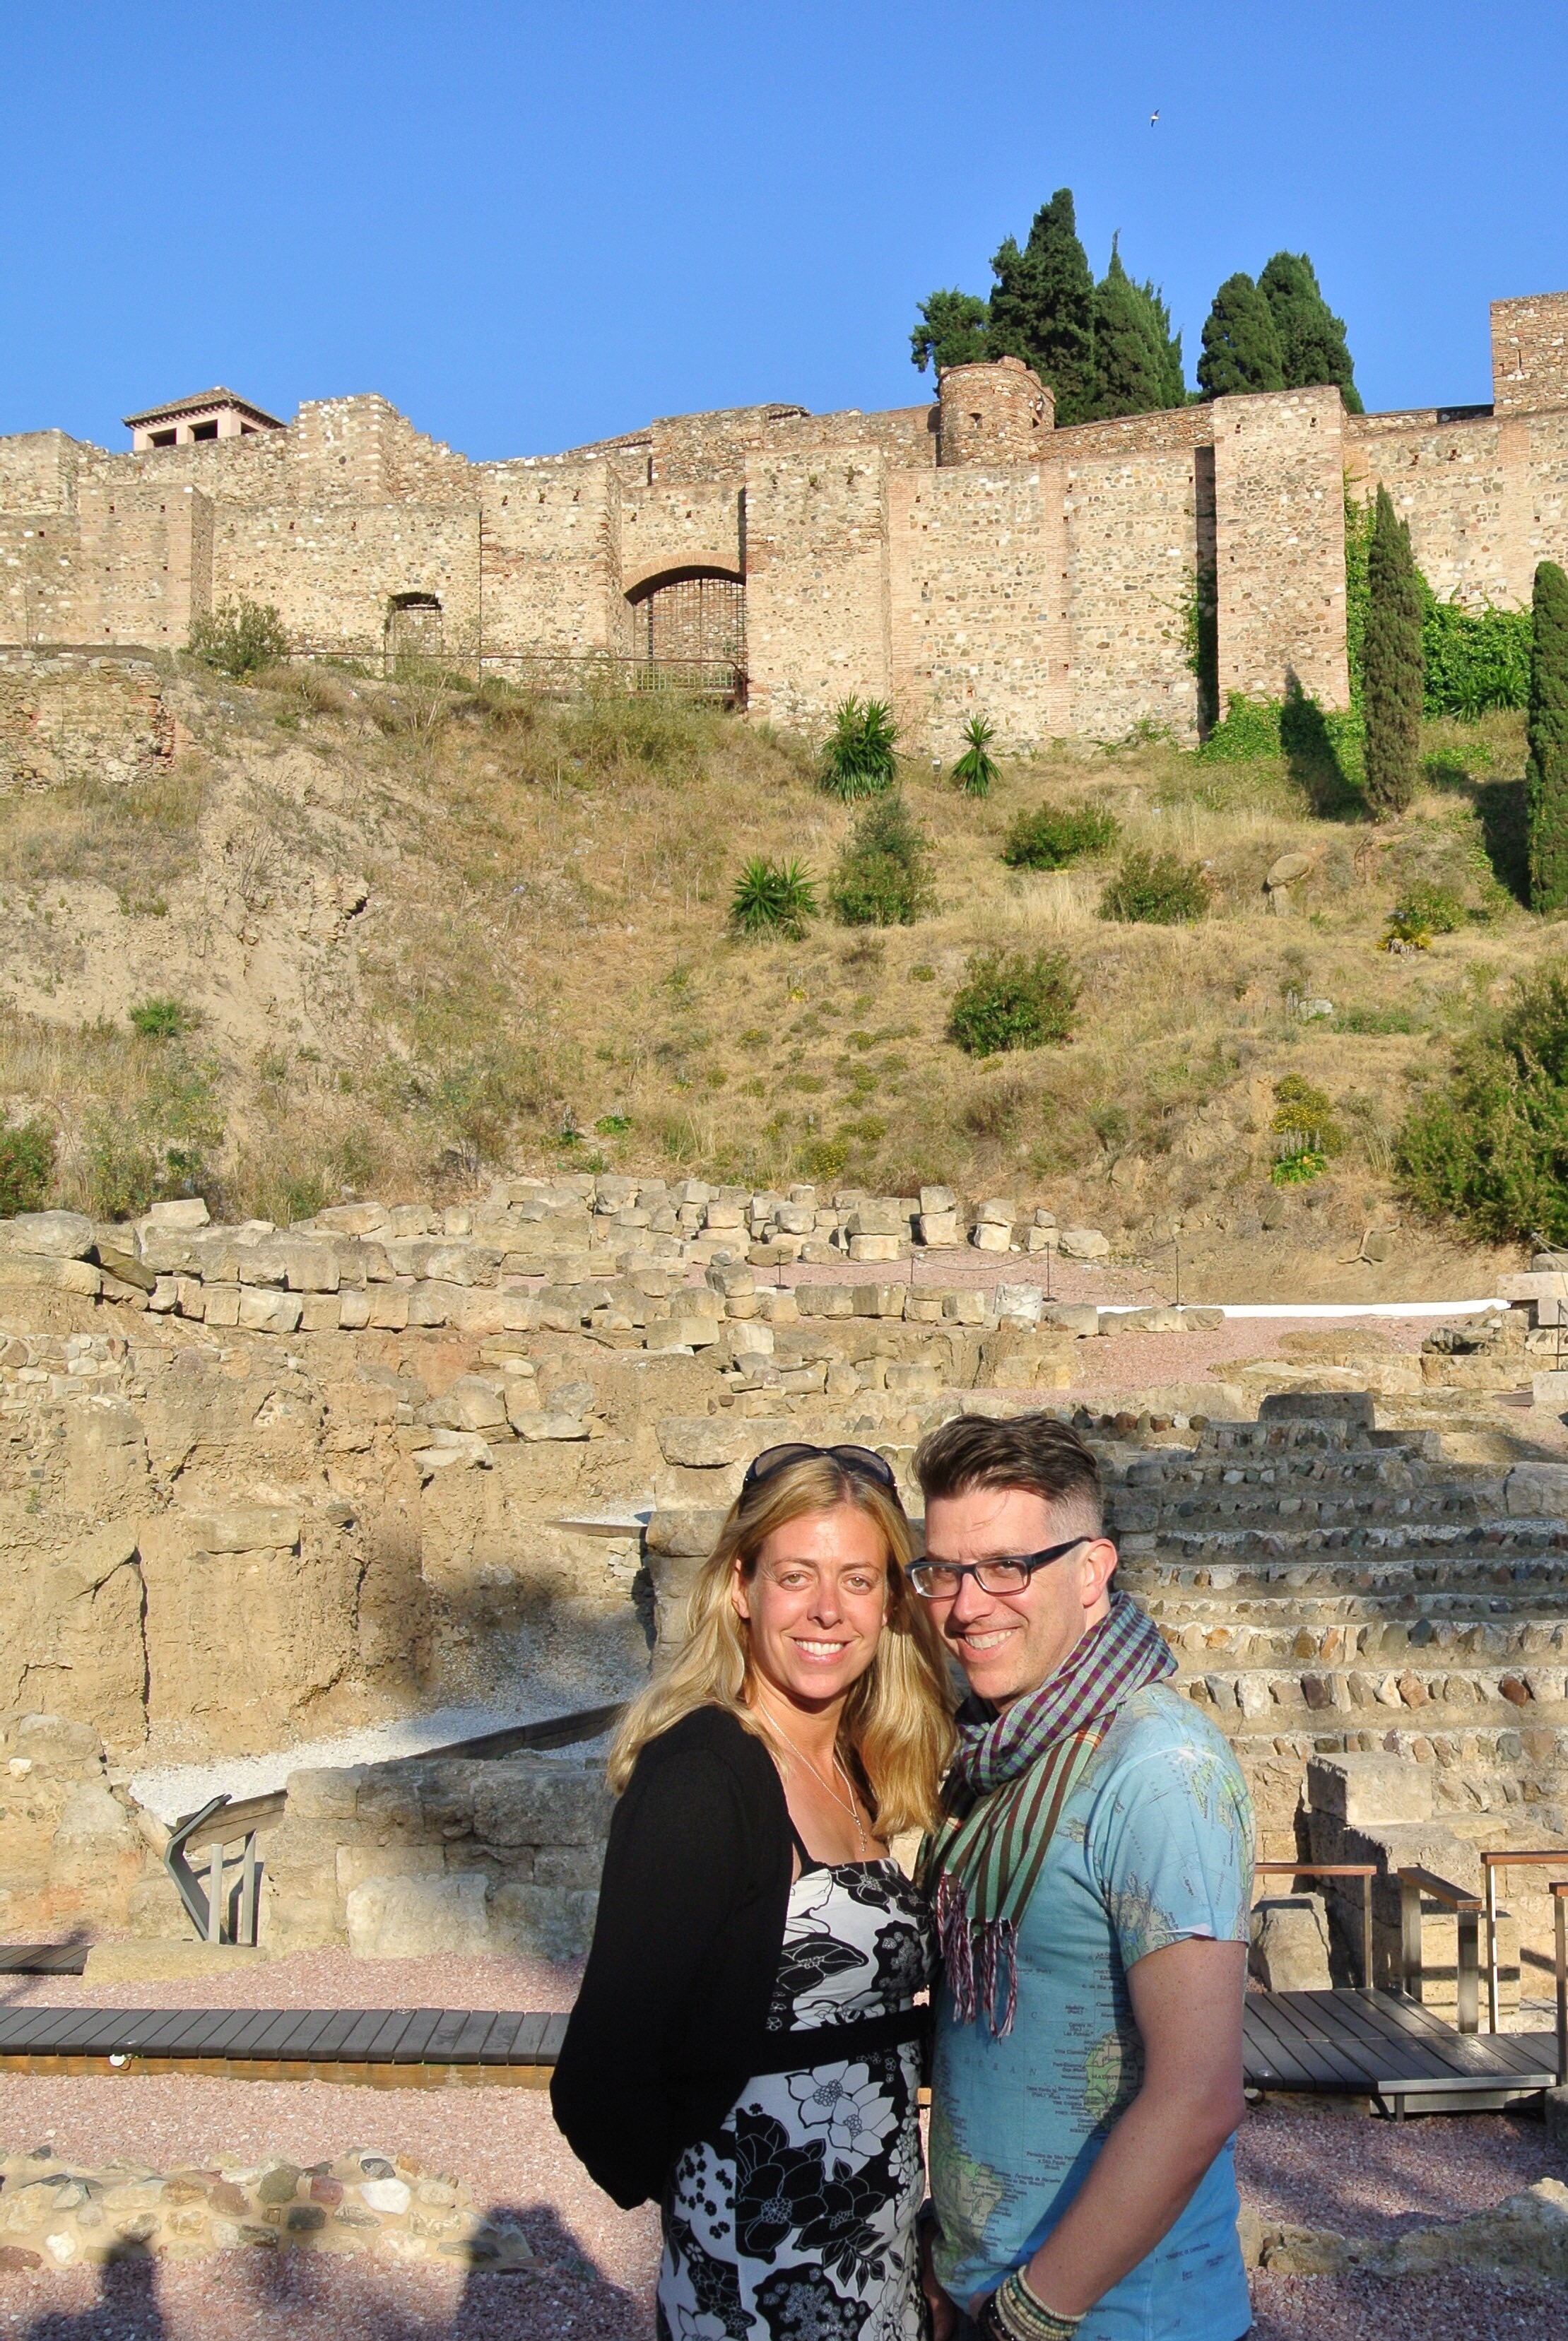 Jo and Wally get ready to explore the Alcazaba